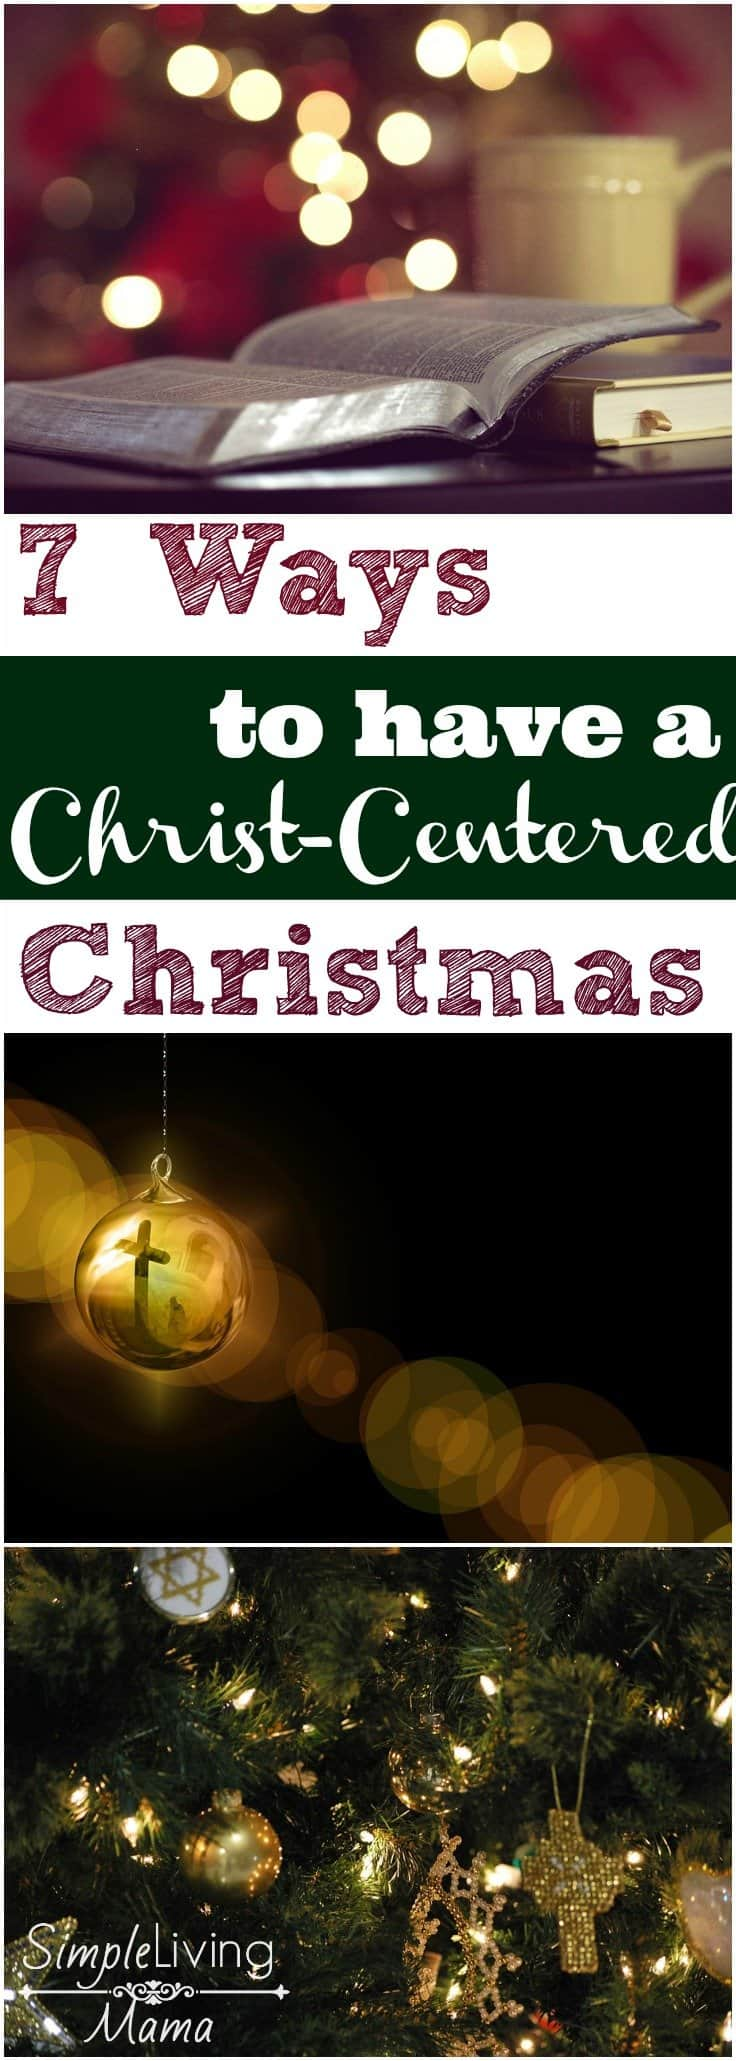 In a world where people are turning away from Christ, it is so important to bring him back to the forefront. Here are 7 ways you can have a Christ-Centered Christmas and start new traditions with your family.